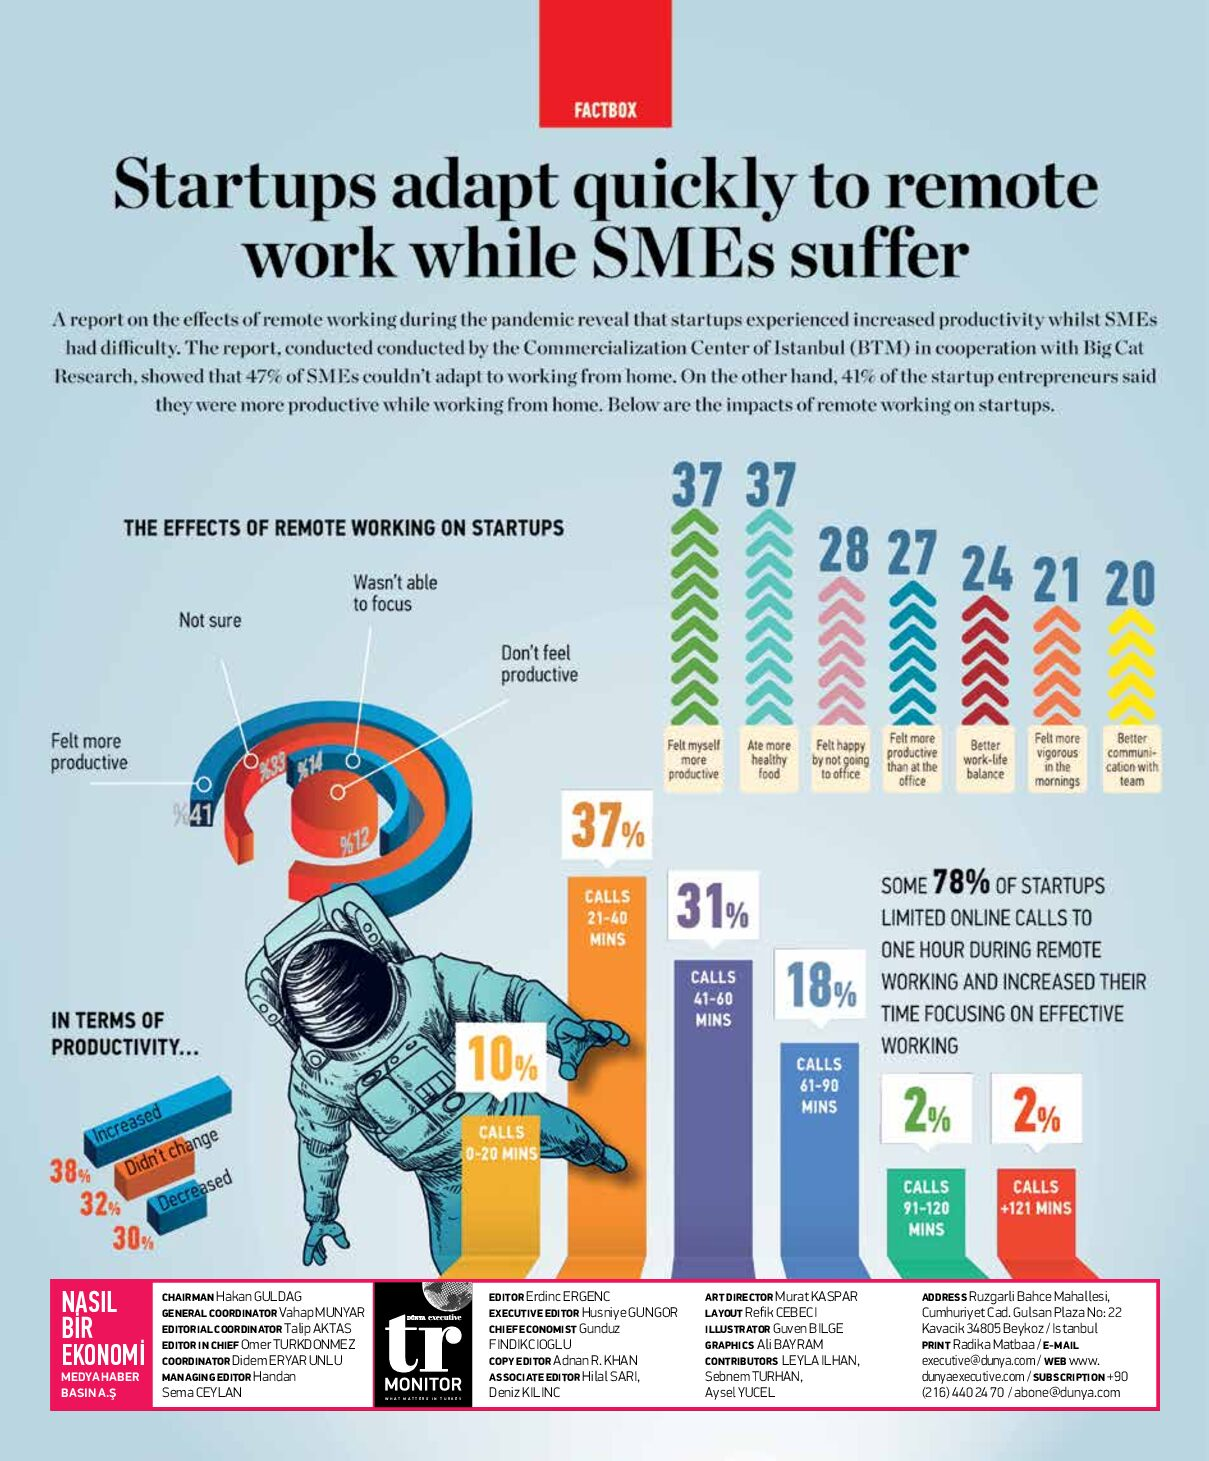 Start-up adapt quickly to remote work while SMEs suffer